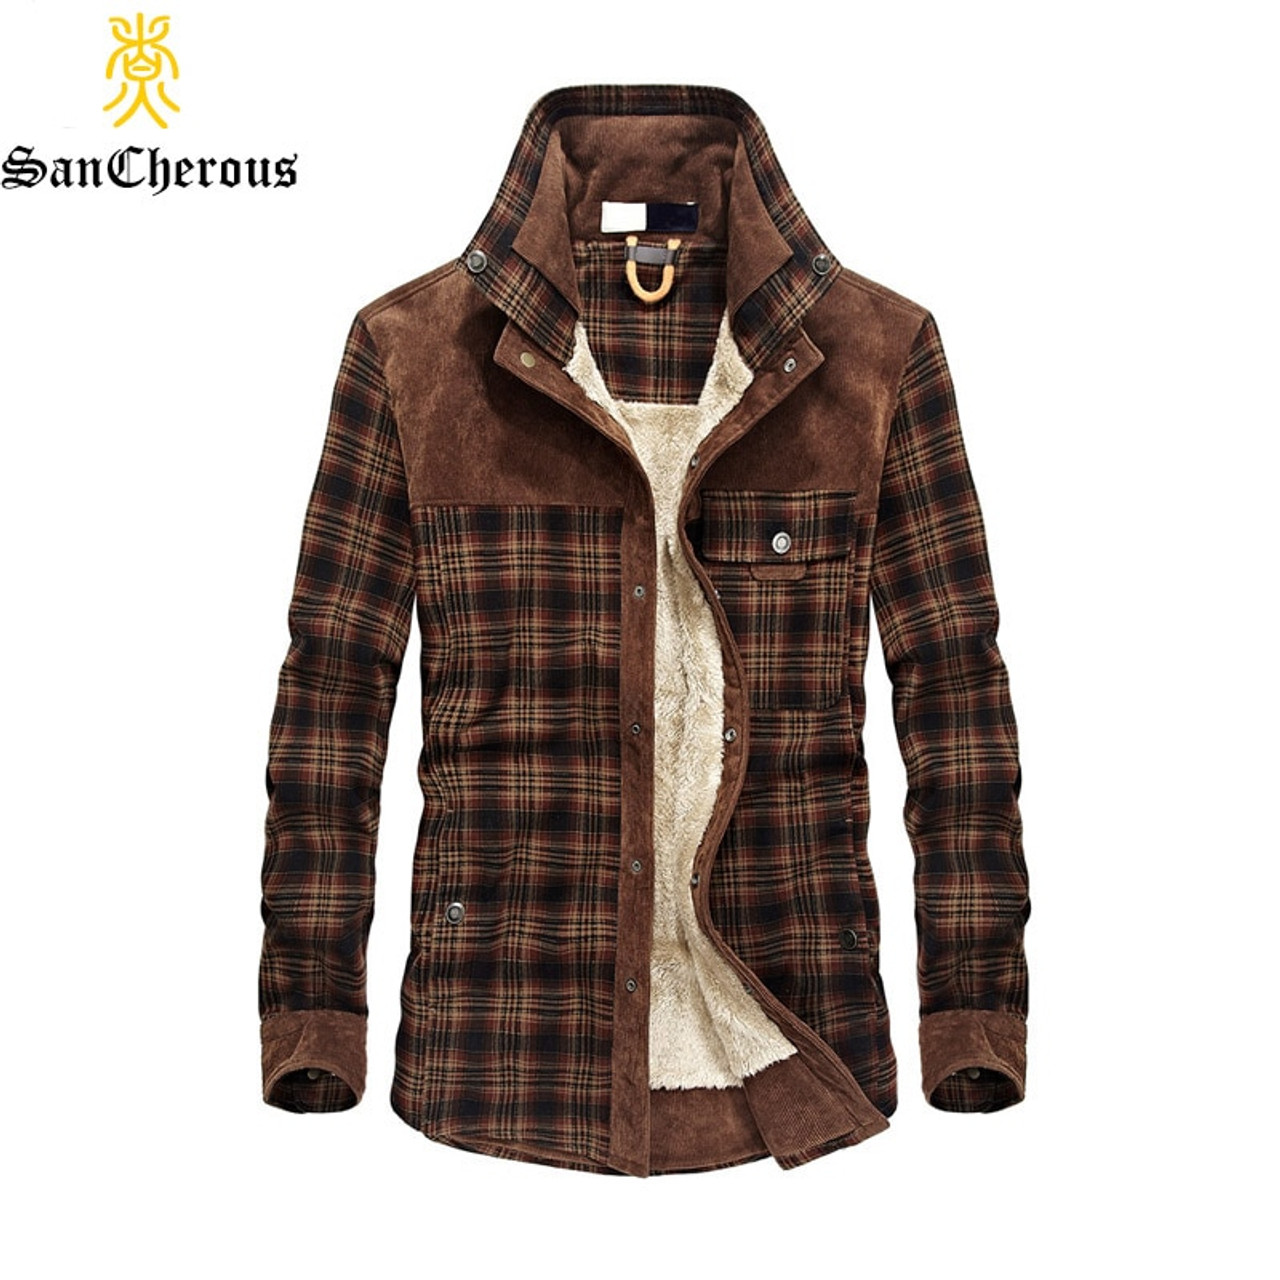 82ccaca3601 2018 Dropshipping Men 100% Cotton Liner Casual Winter Jacke Men Outerwear  Plaid Thick Wool Liner Autumn Winter Fleece Jacket - OnshopDeals.Com